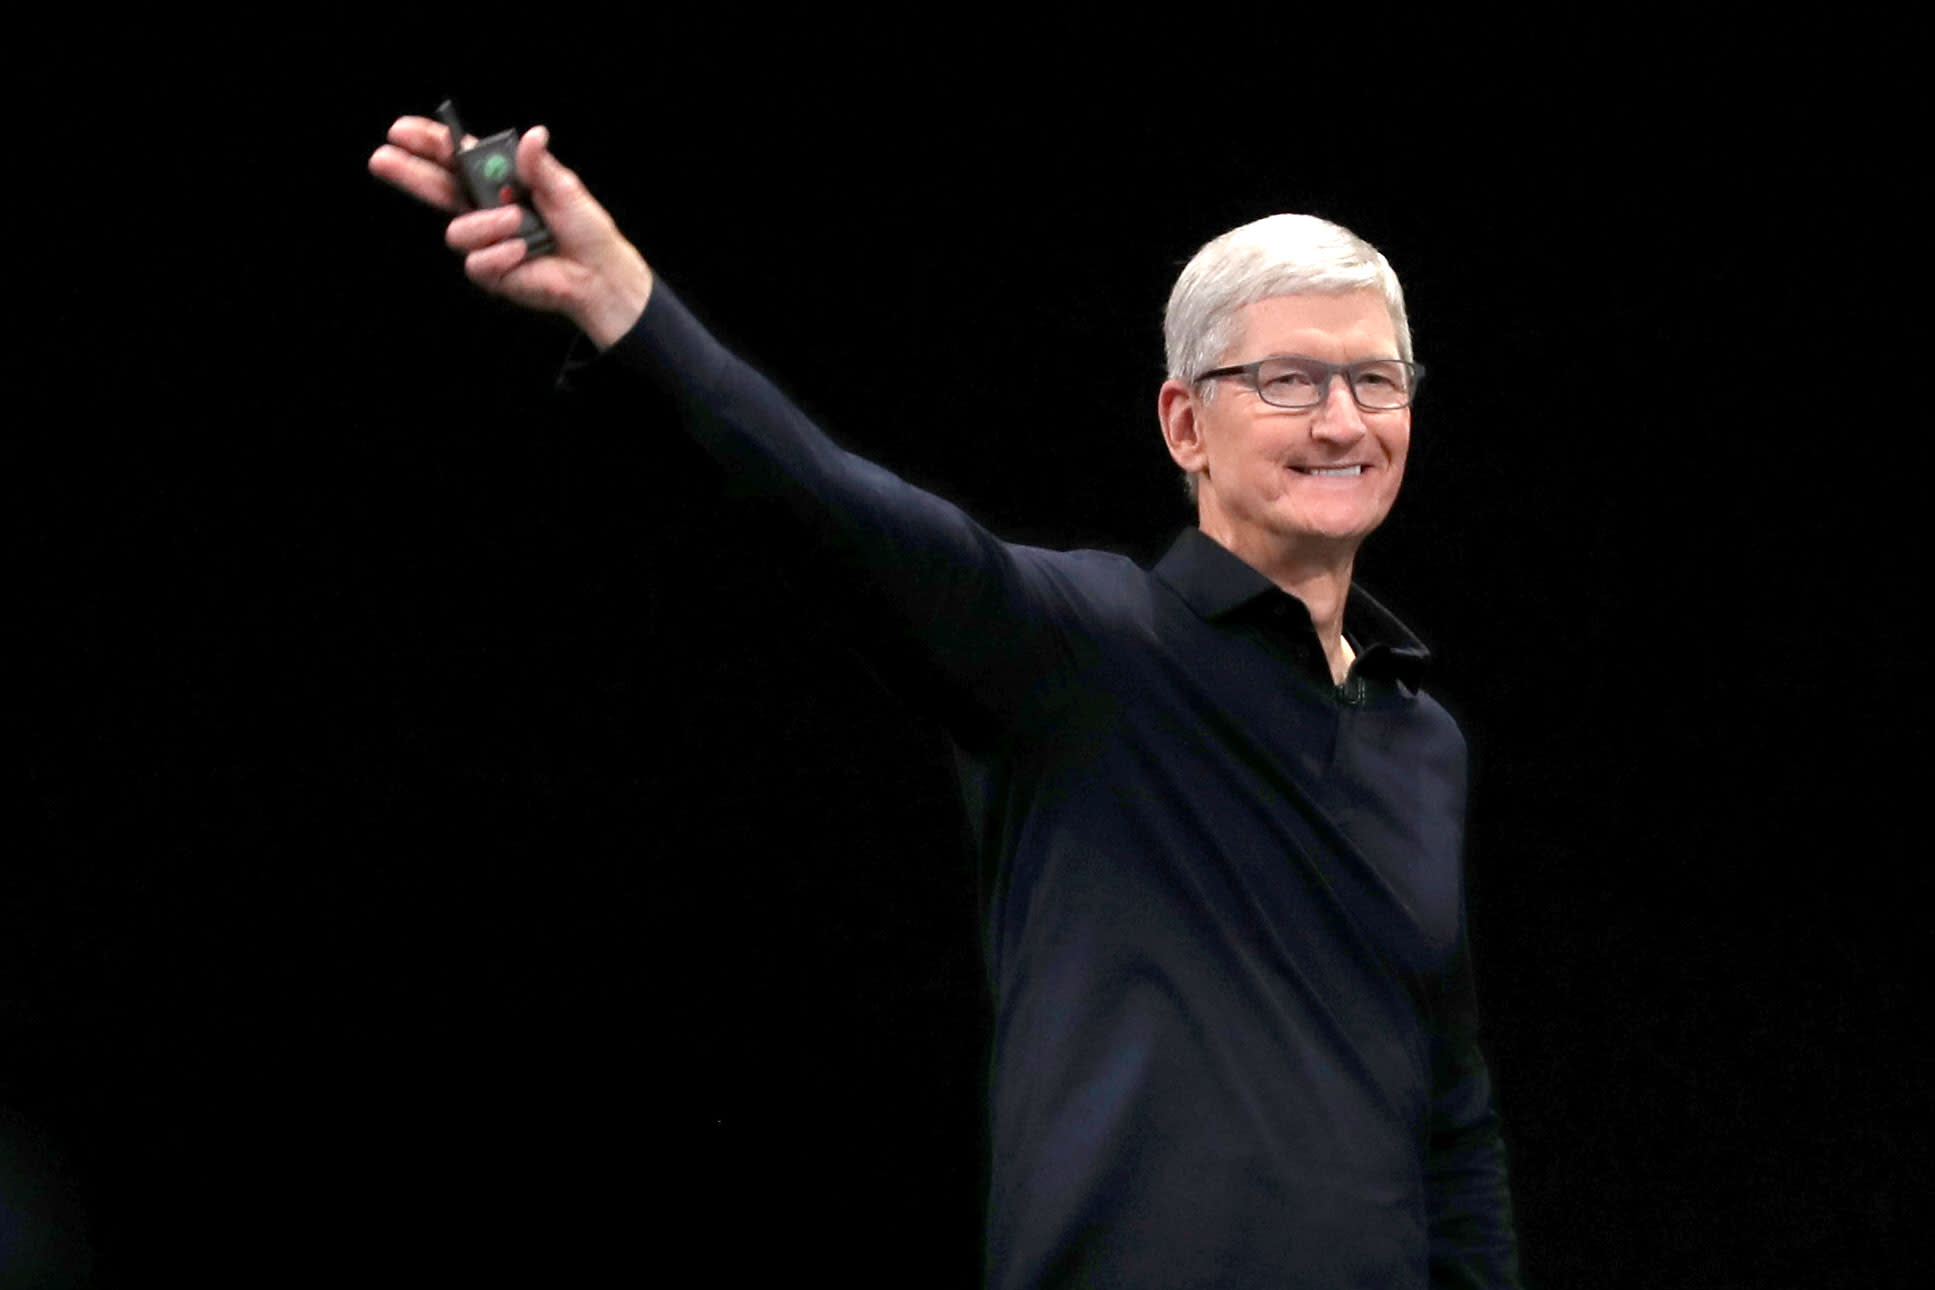 Techmeme: Apple spent $4 2B, or 7 9% of its revenue, on R&D